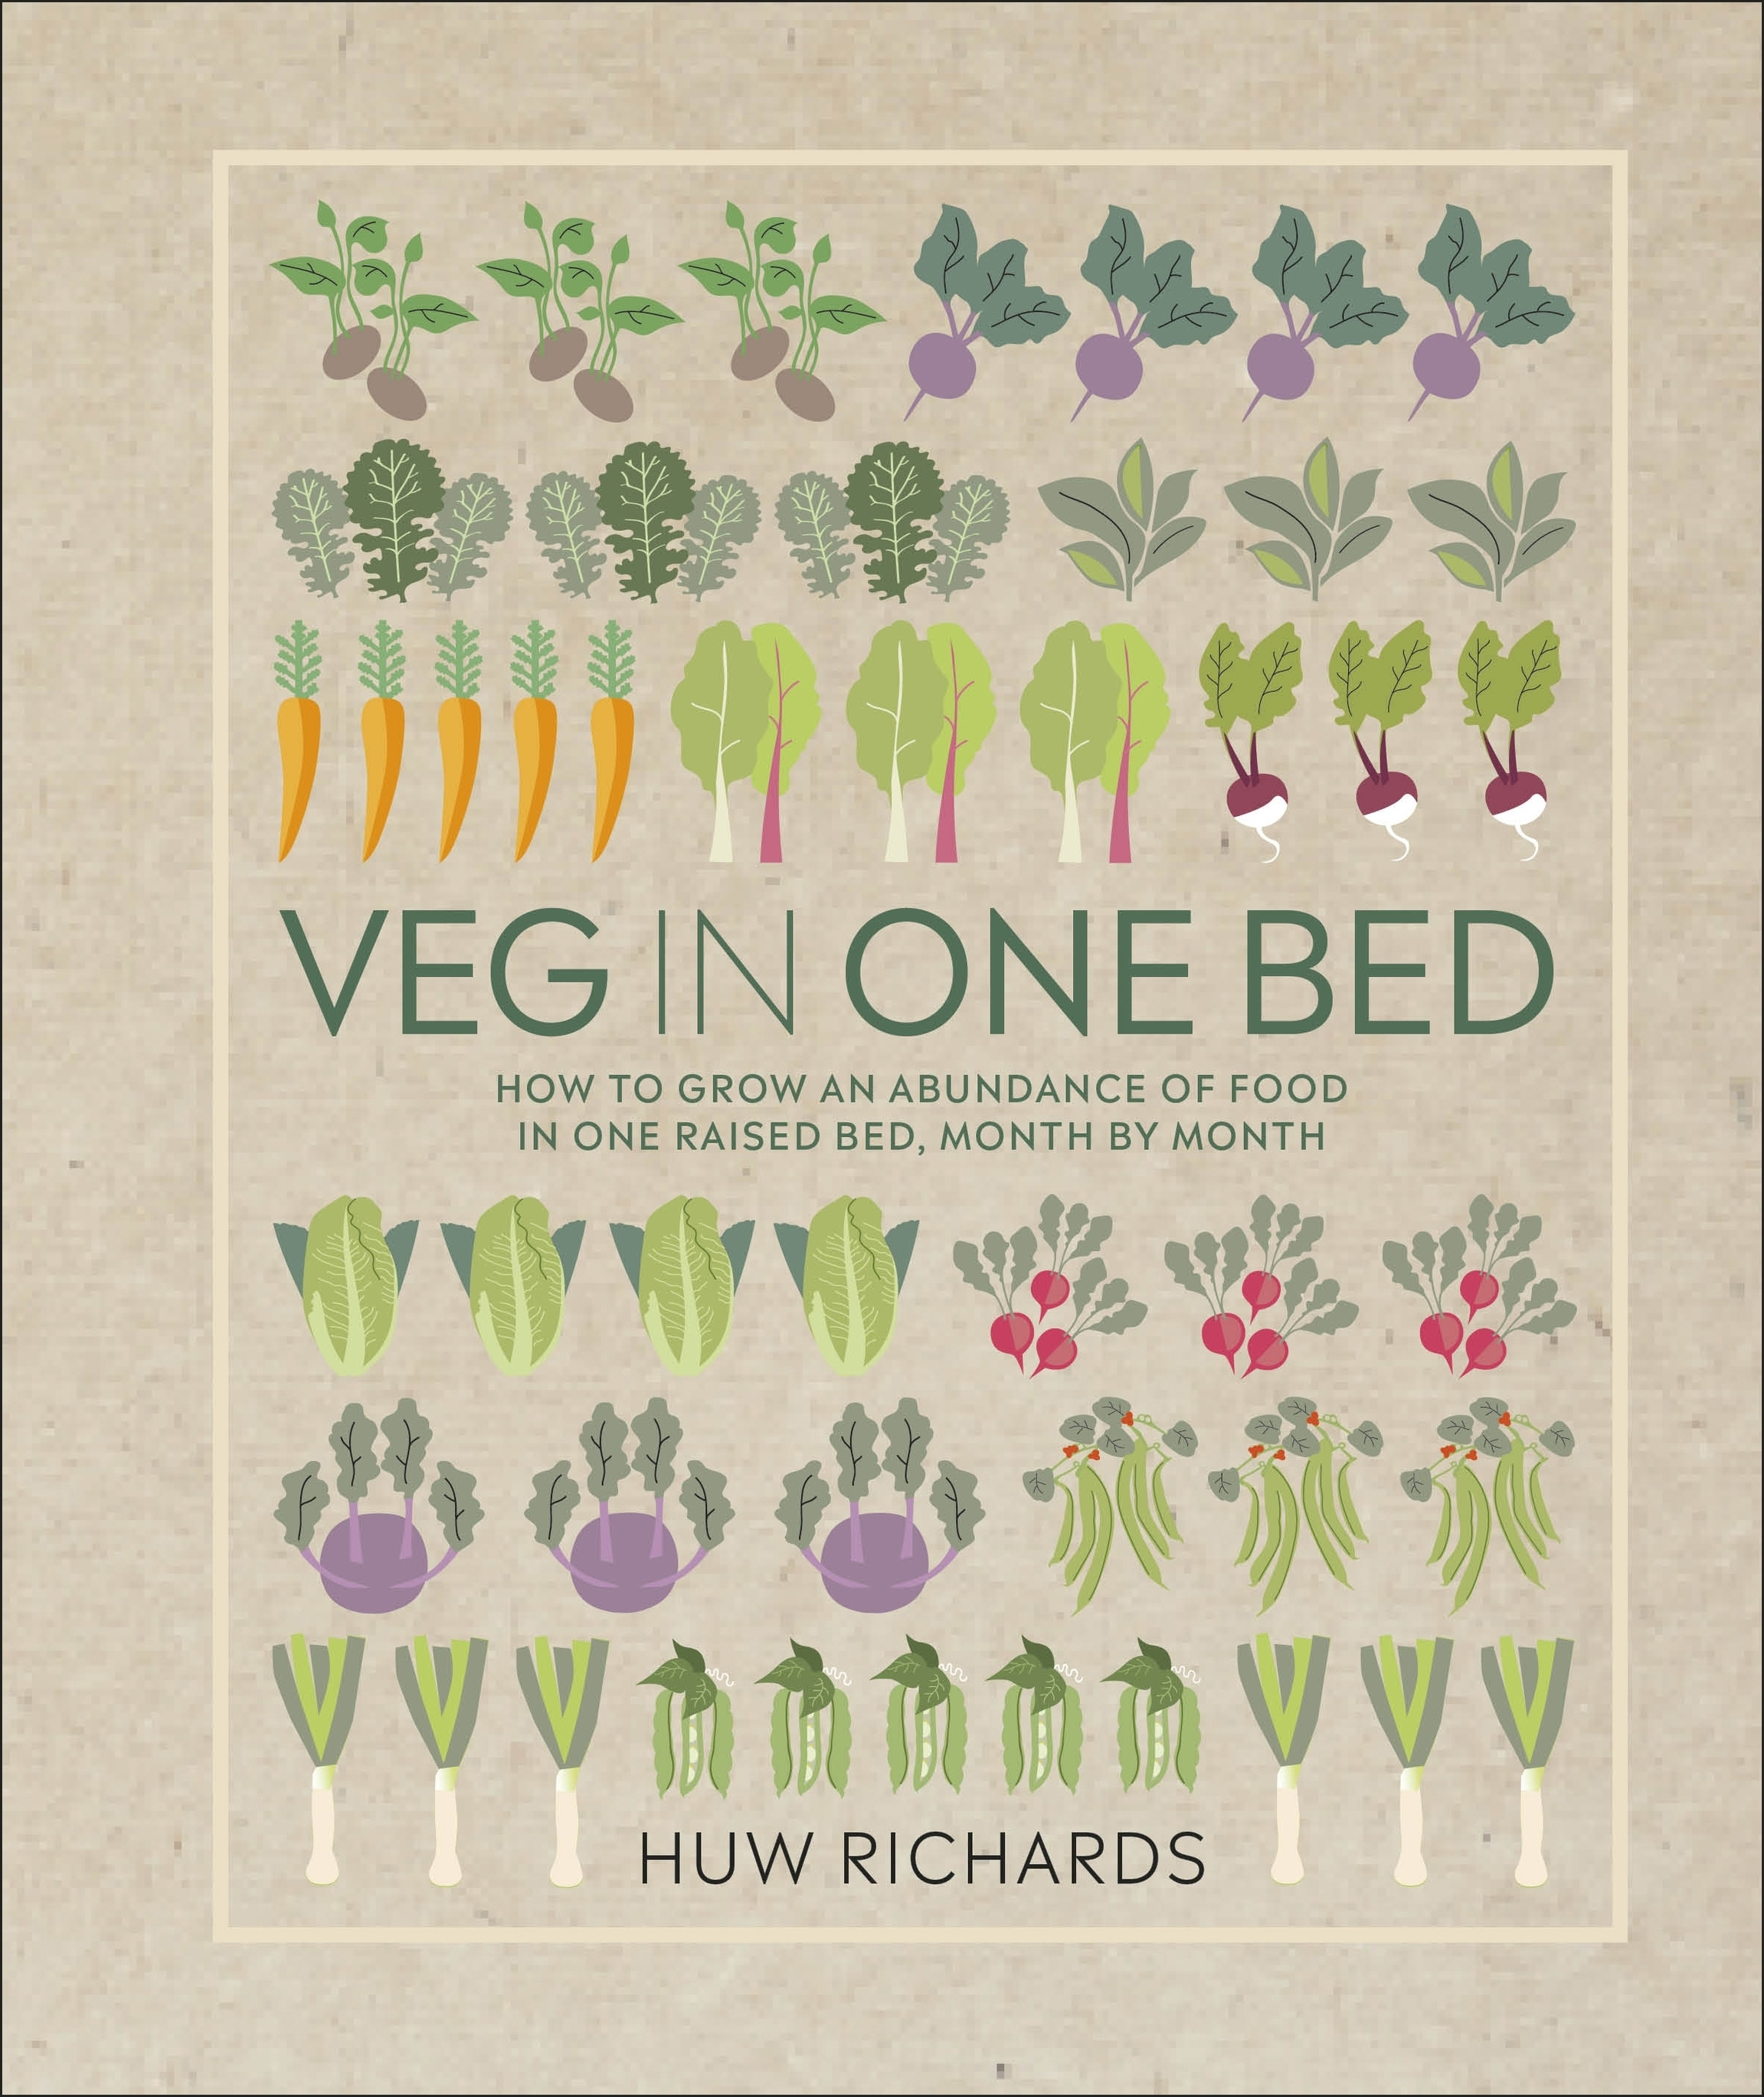 Cover Image of Veg in One Bed